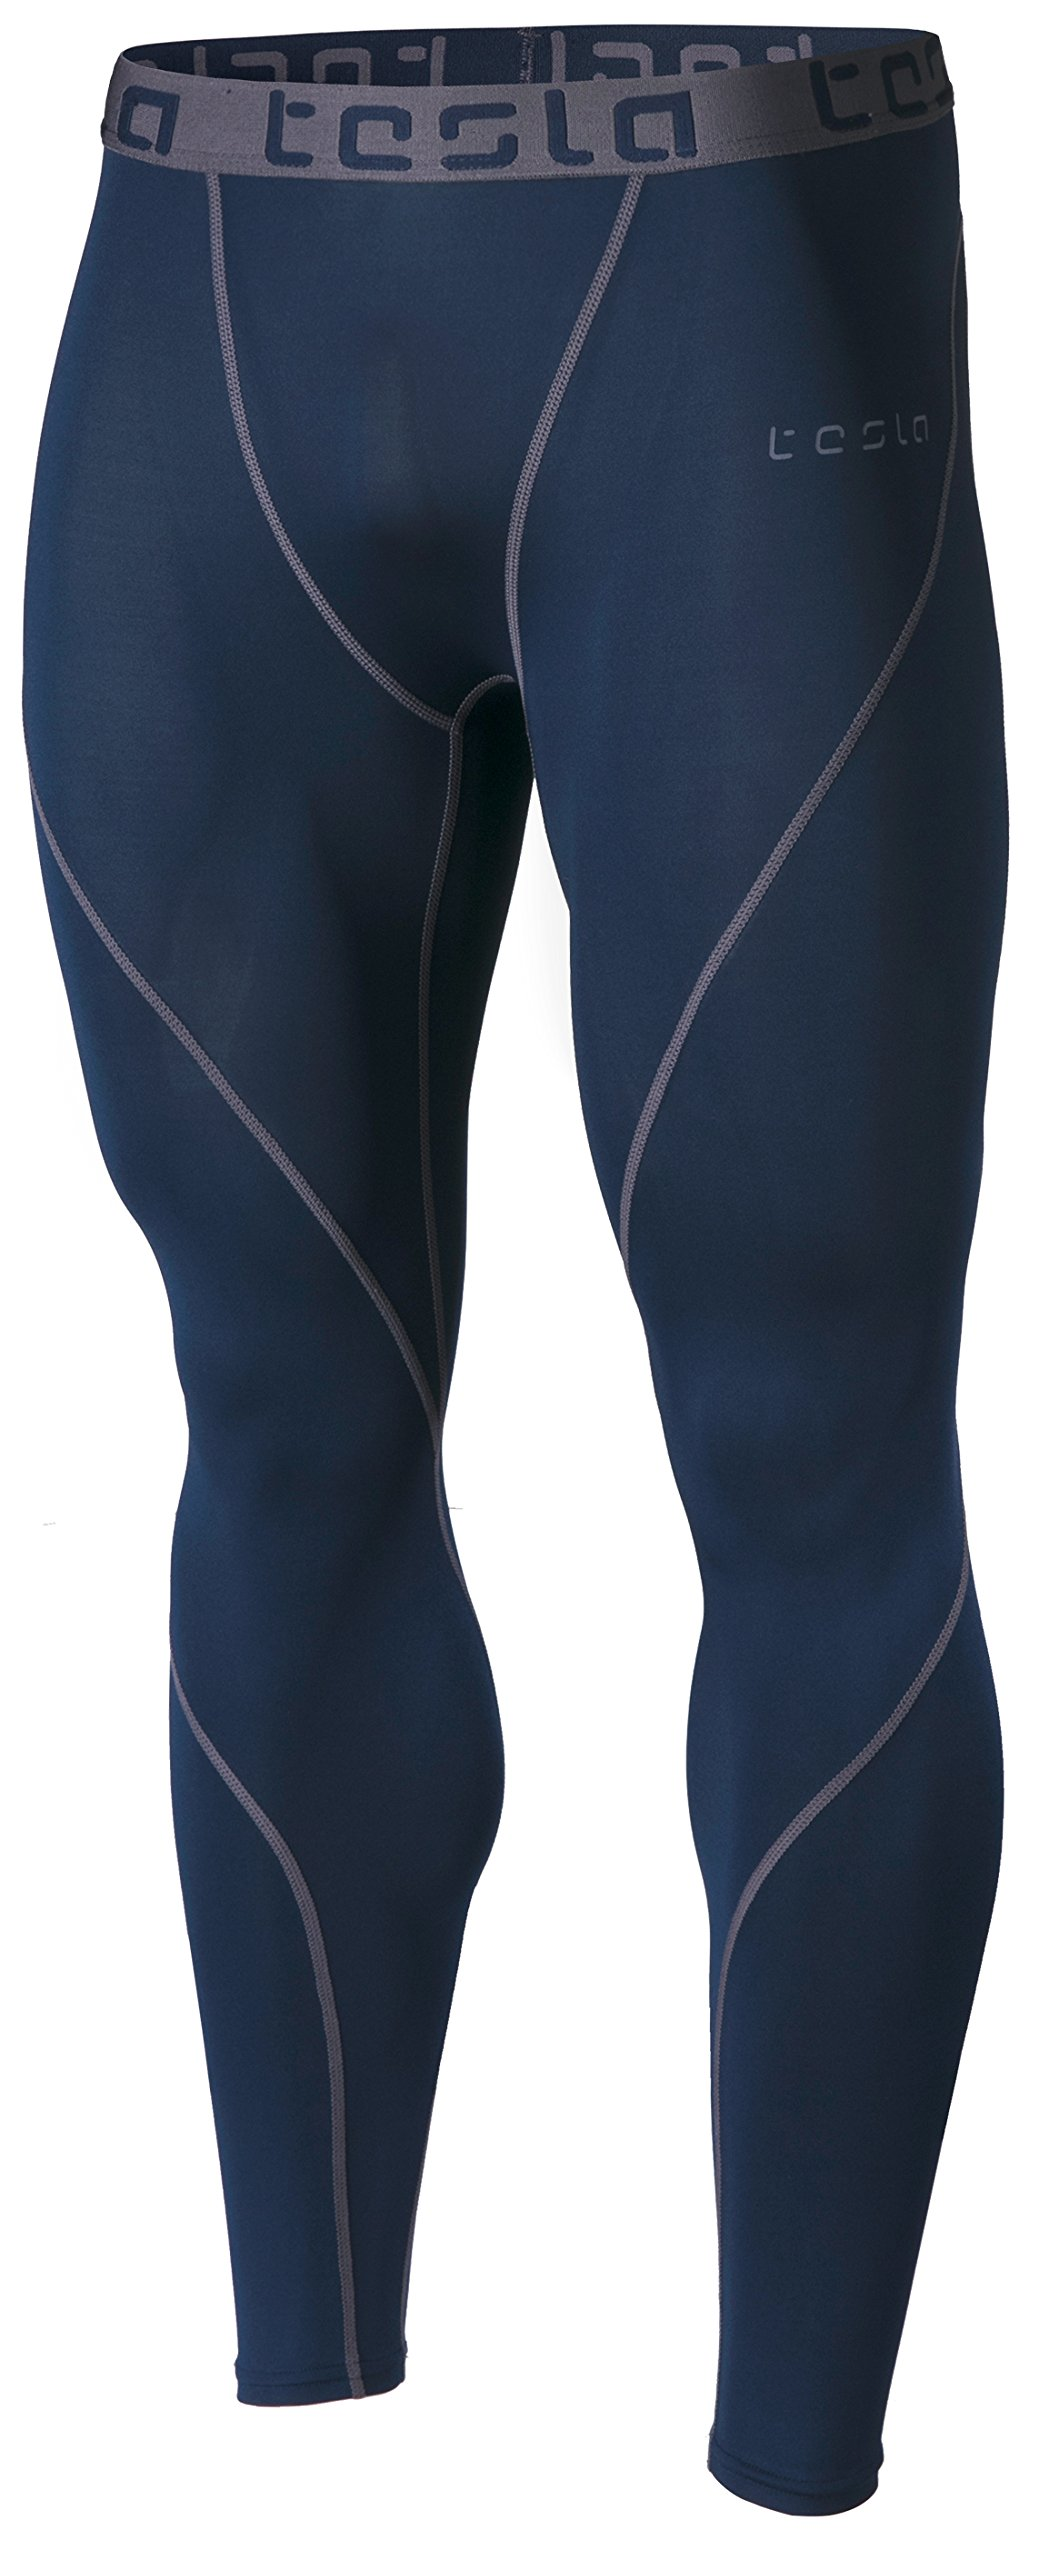 TSLA Men's Compression Pants Running Baselayer Cool Dry Sports Tights, Athletic(mup19) - Navy, X-Small by TSLA